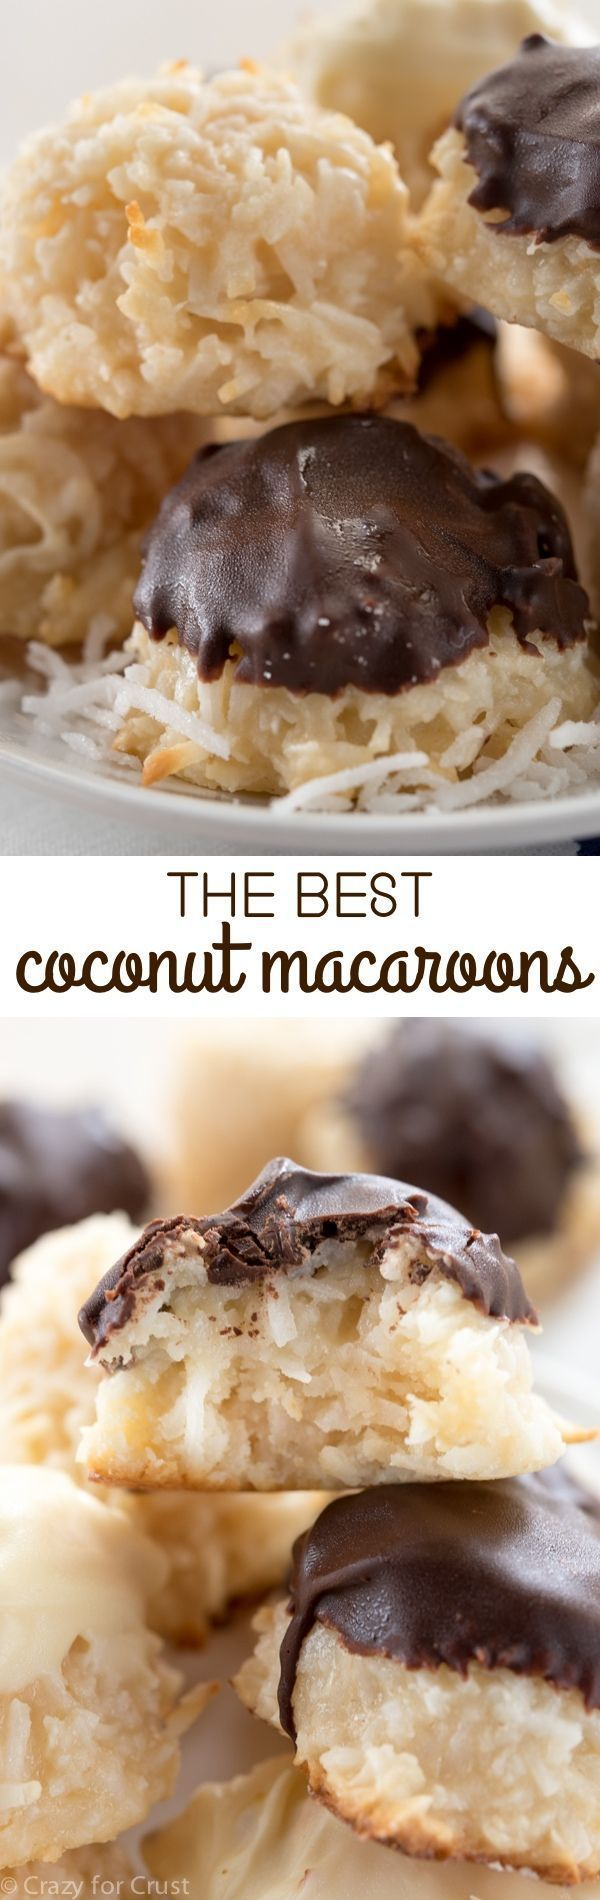 This is the BEST Macaroon recipe! They're bakery-style, huge, and covered in chocolate!